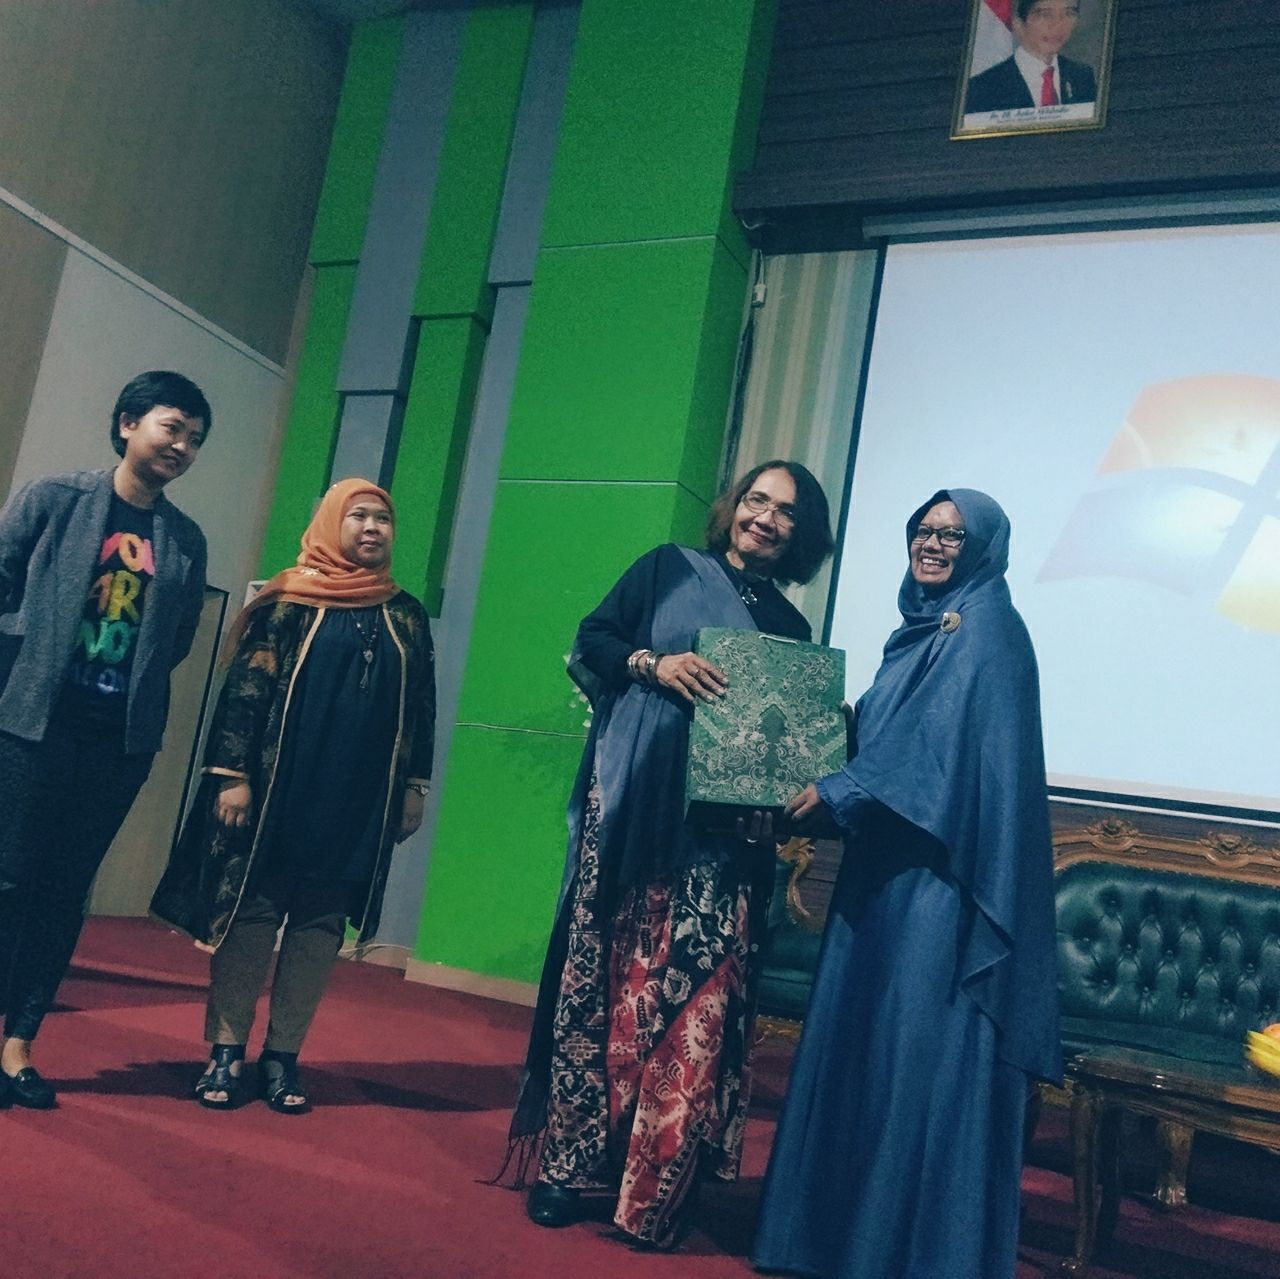 Sambut Hari Kartini, ESA Adakan Public Discussion